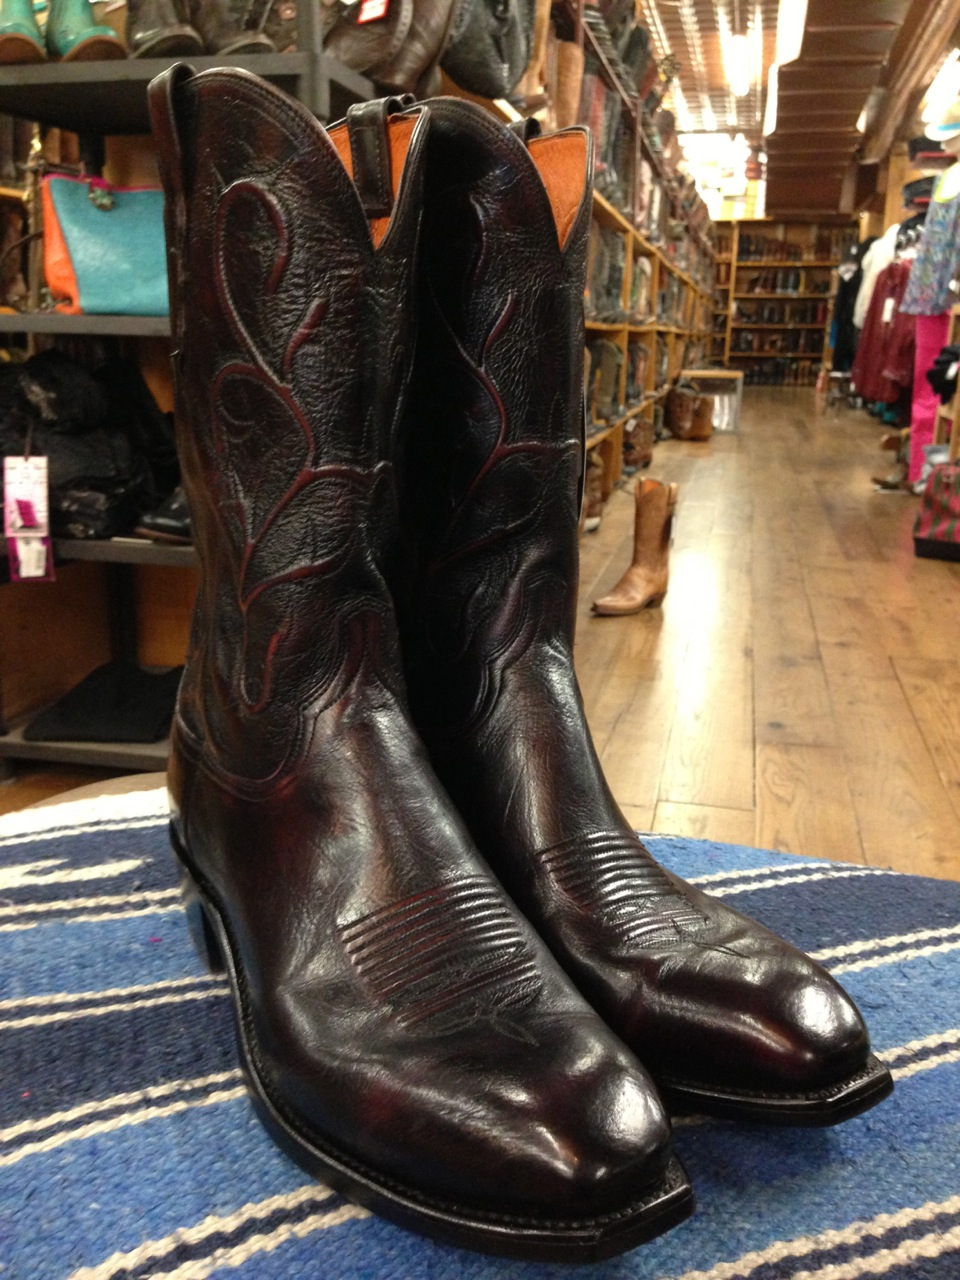 Best Place To Buy Cowboy Boots - Boot Yc